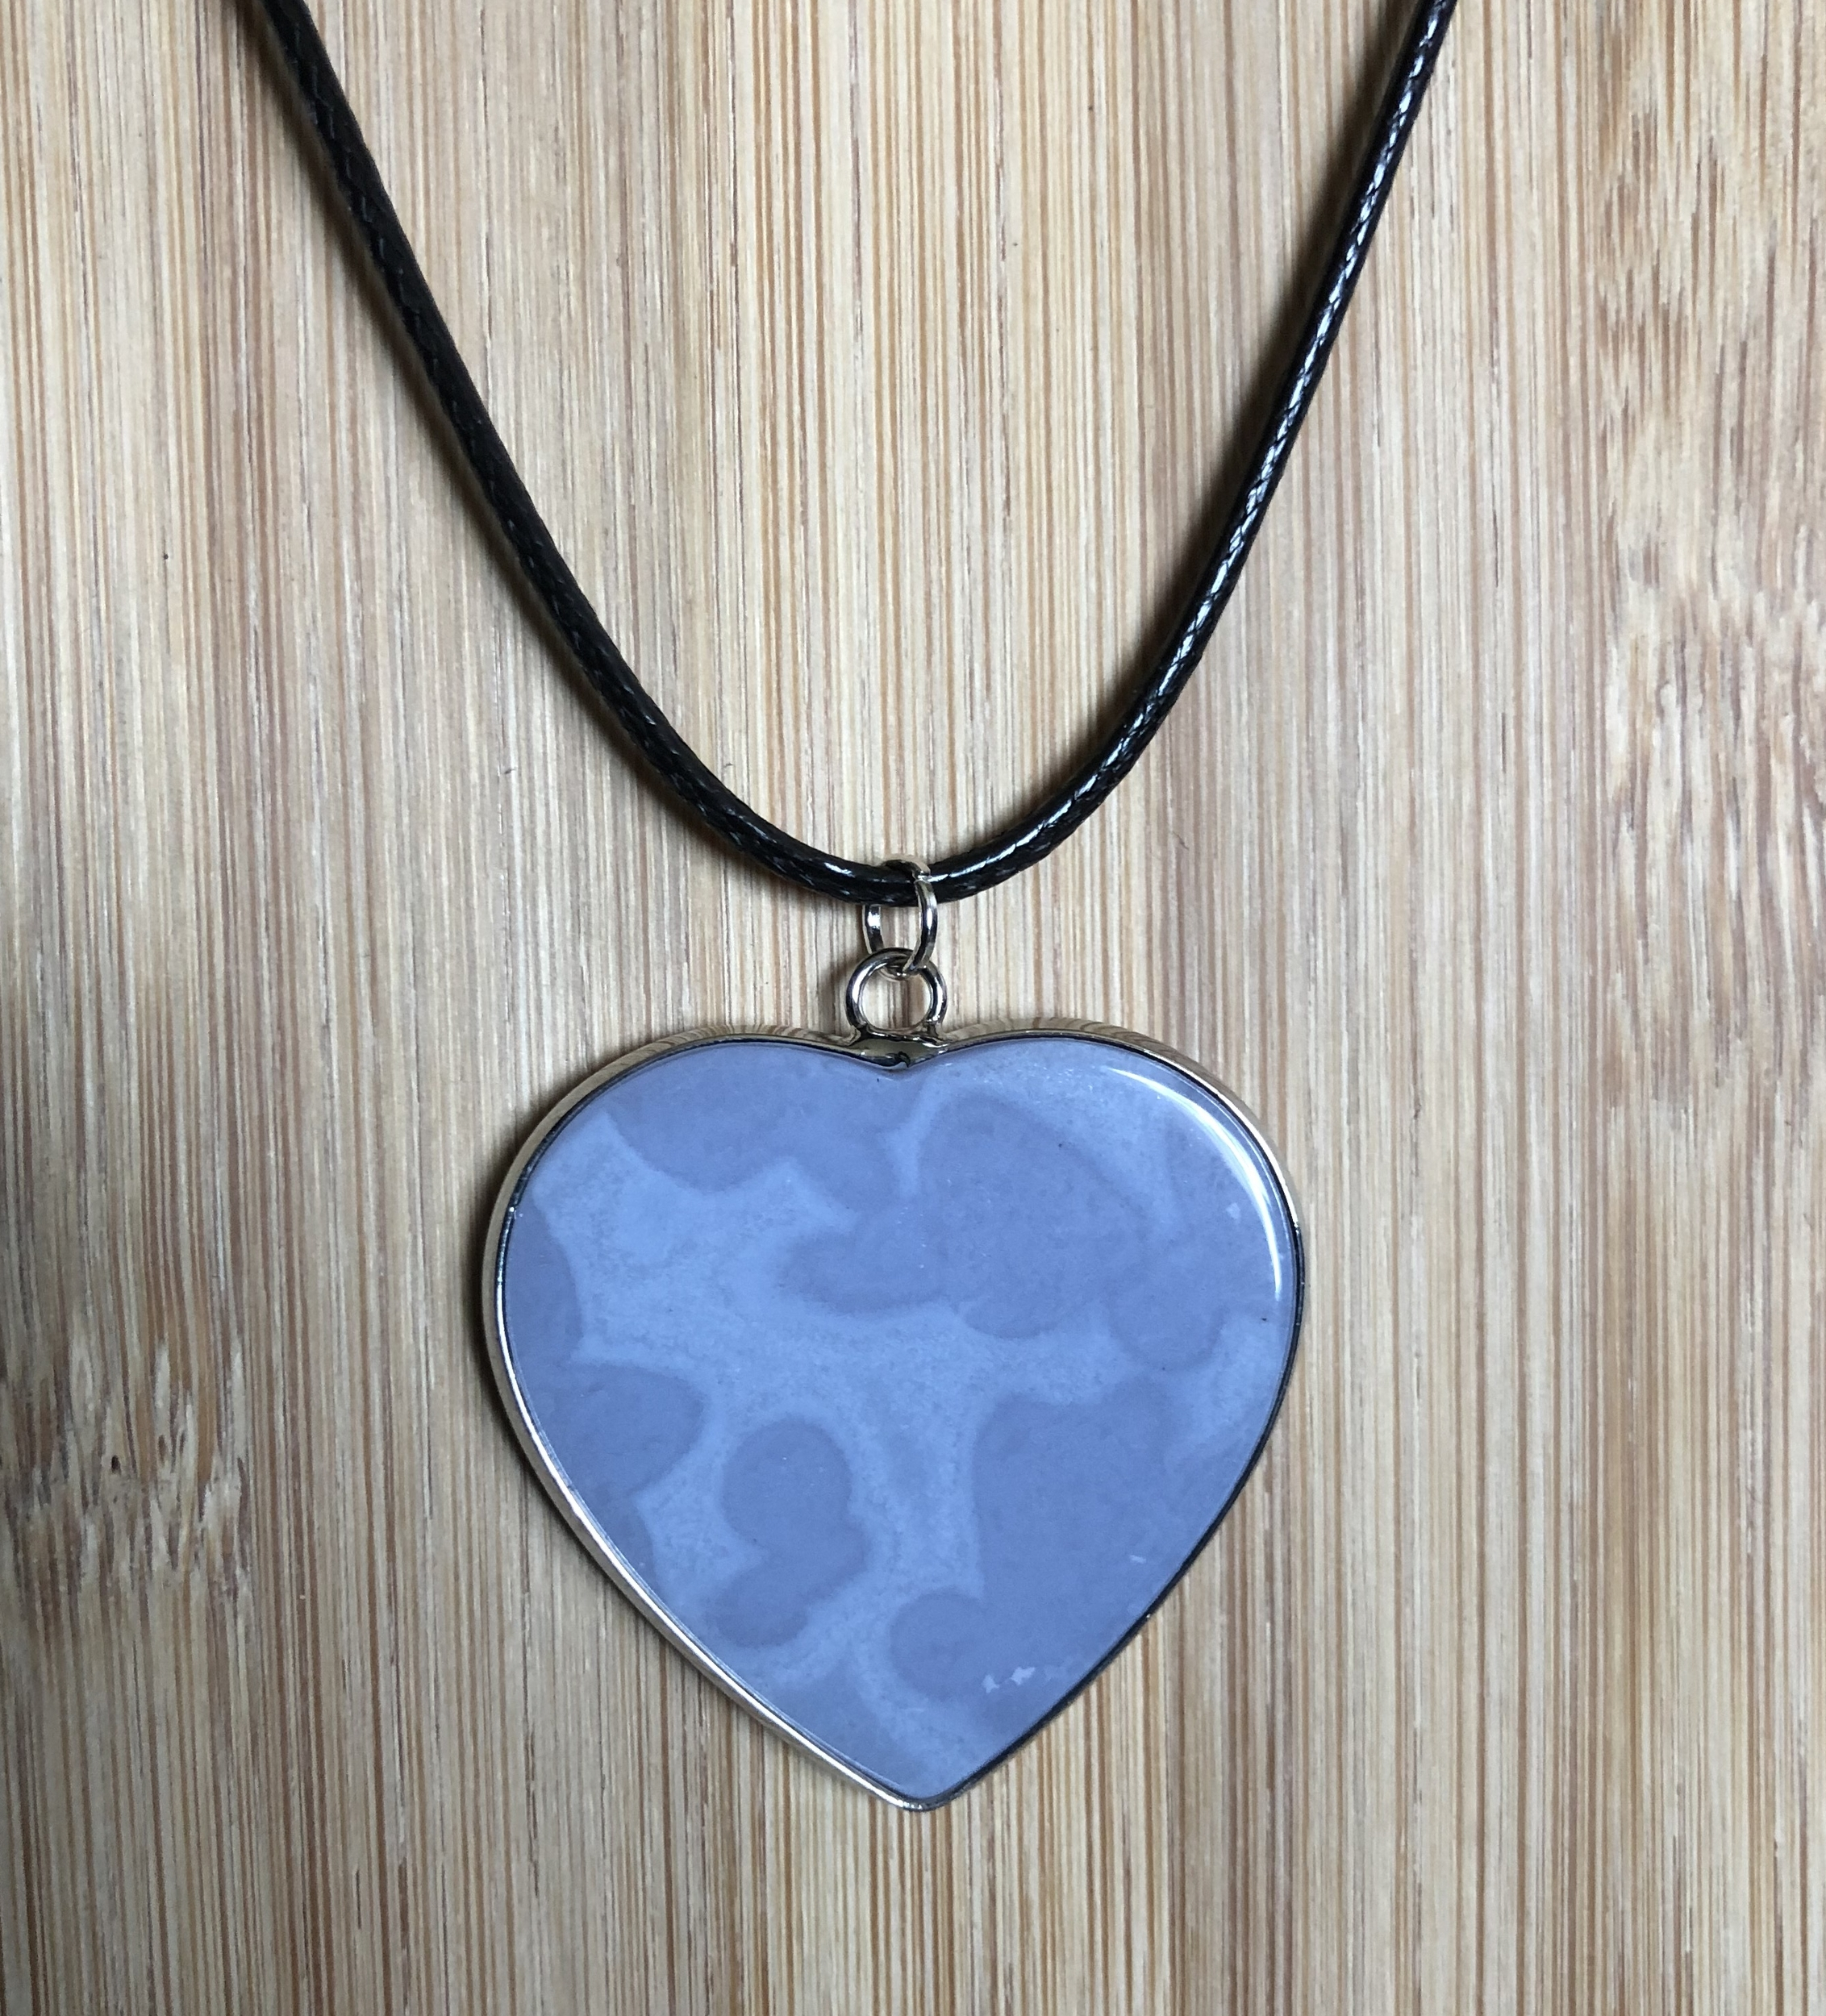 Collier coeur cristal bleu cerclé - Angel shop